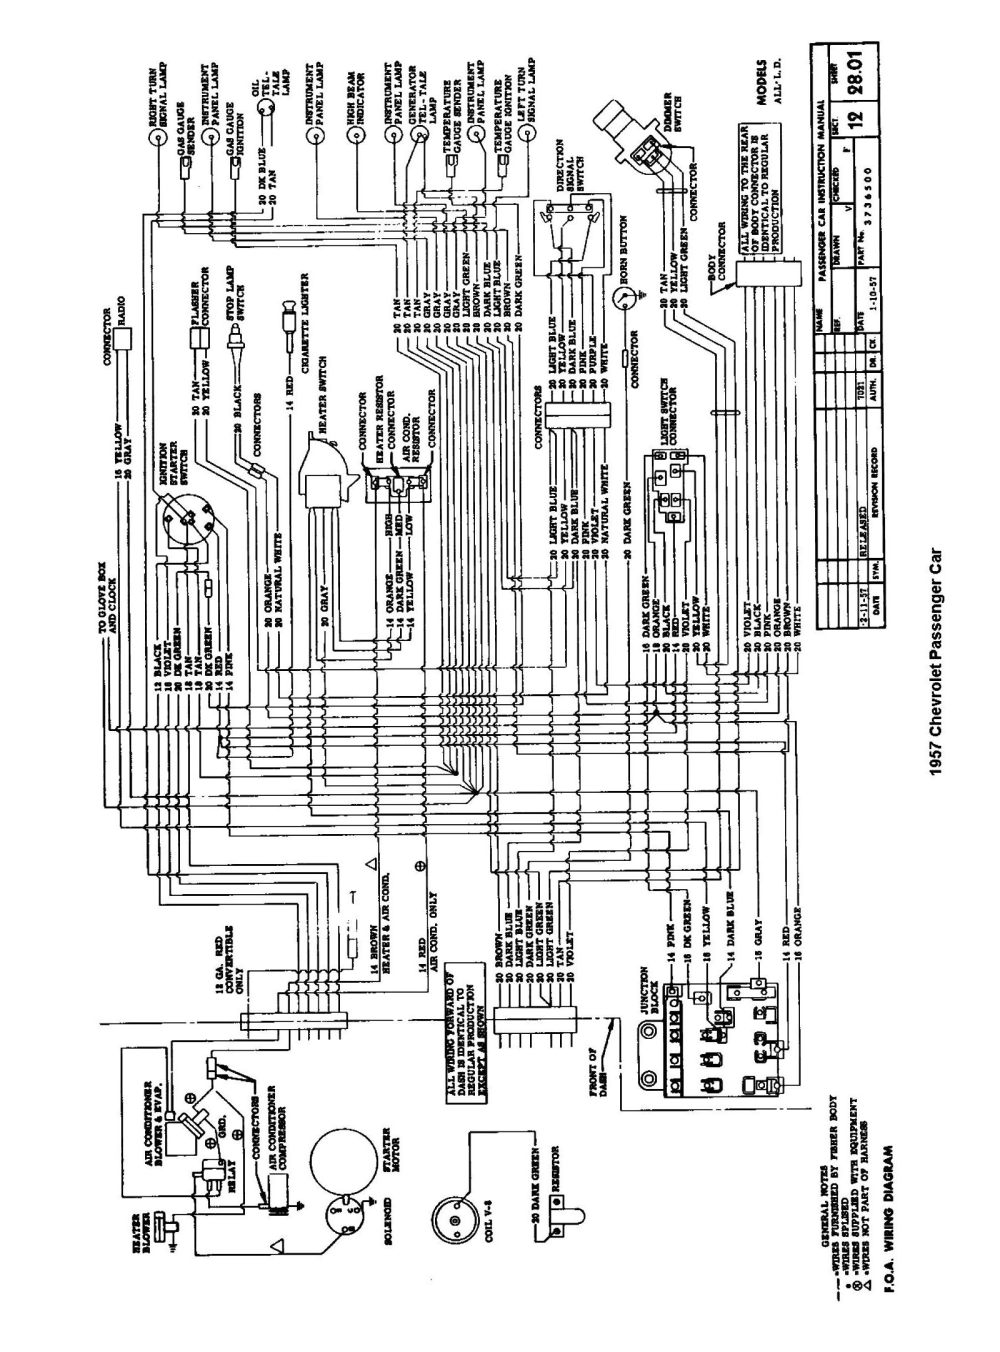 medium resolution of 1957 chevy wiring schematics wiring diagram portal 57 chevy fuel pump 57 chevy under hood wiring